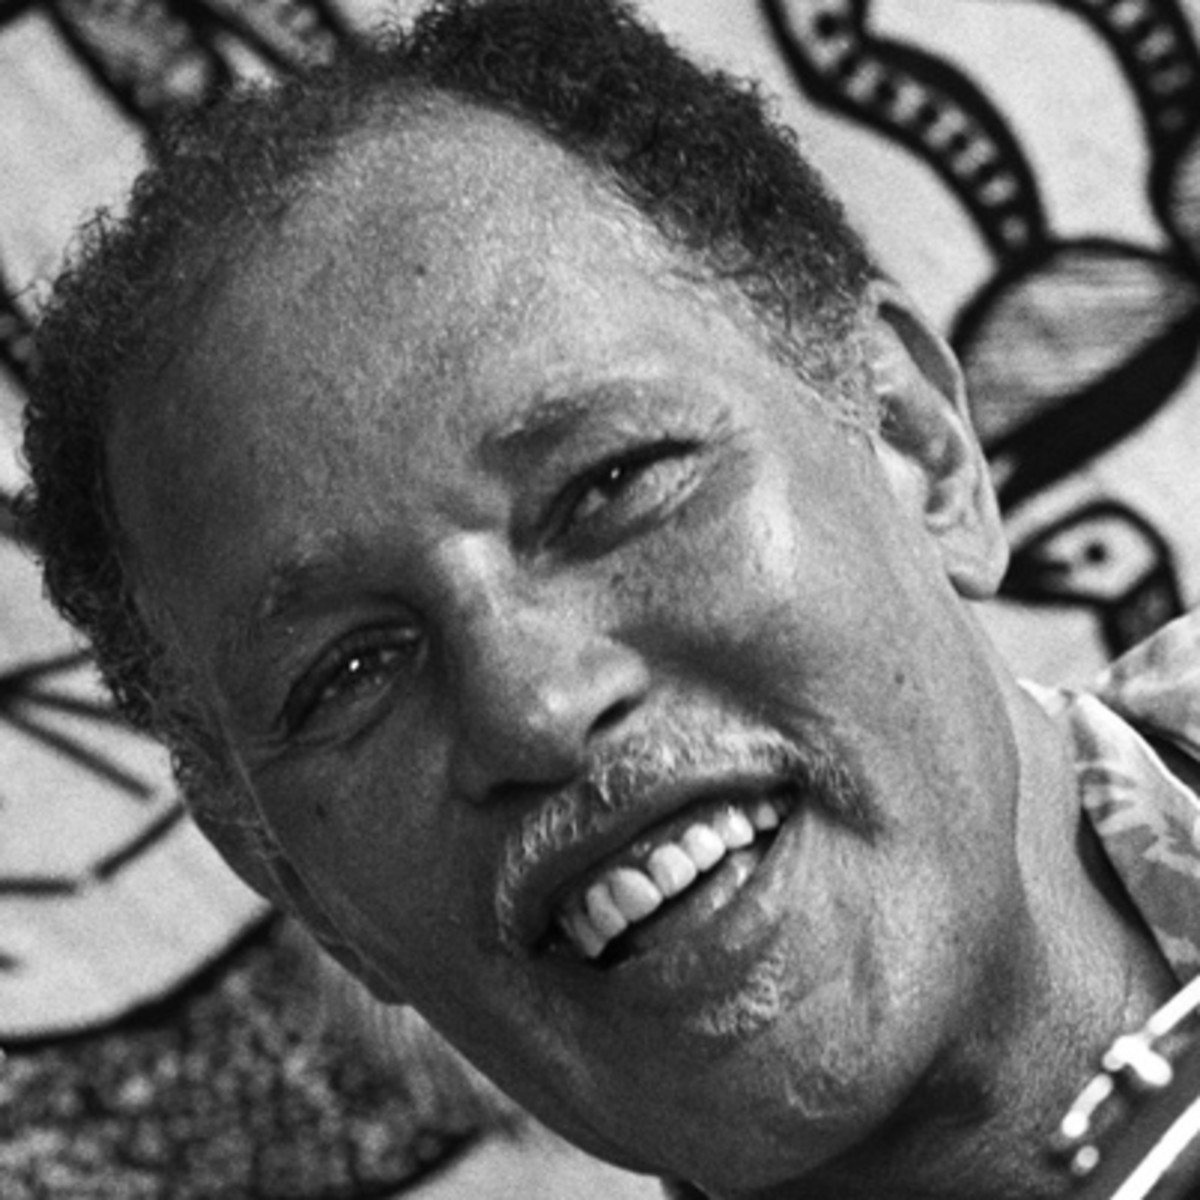 an introduction to the life and history of dexter gordon By kevin lynch (kevernacular) milwaukee's jazz history and jazz present converge on friday night, dec 2, at the jazz gallery center for the arts, 926 ecenter st milwaukee.